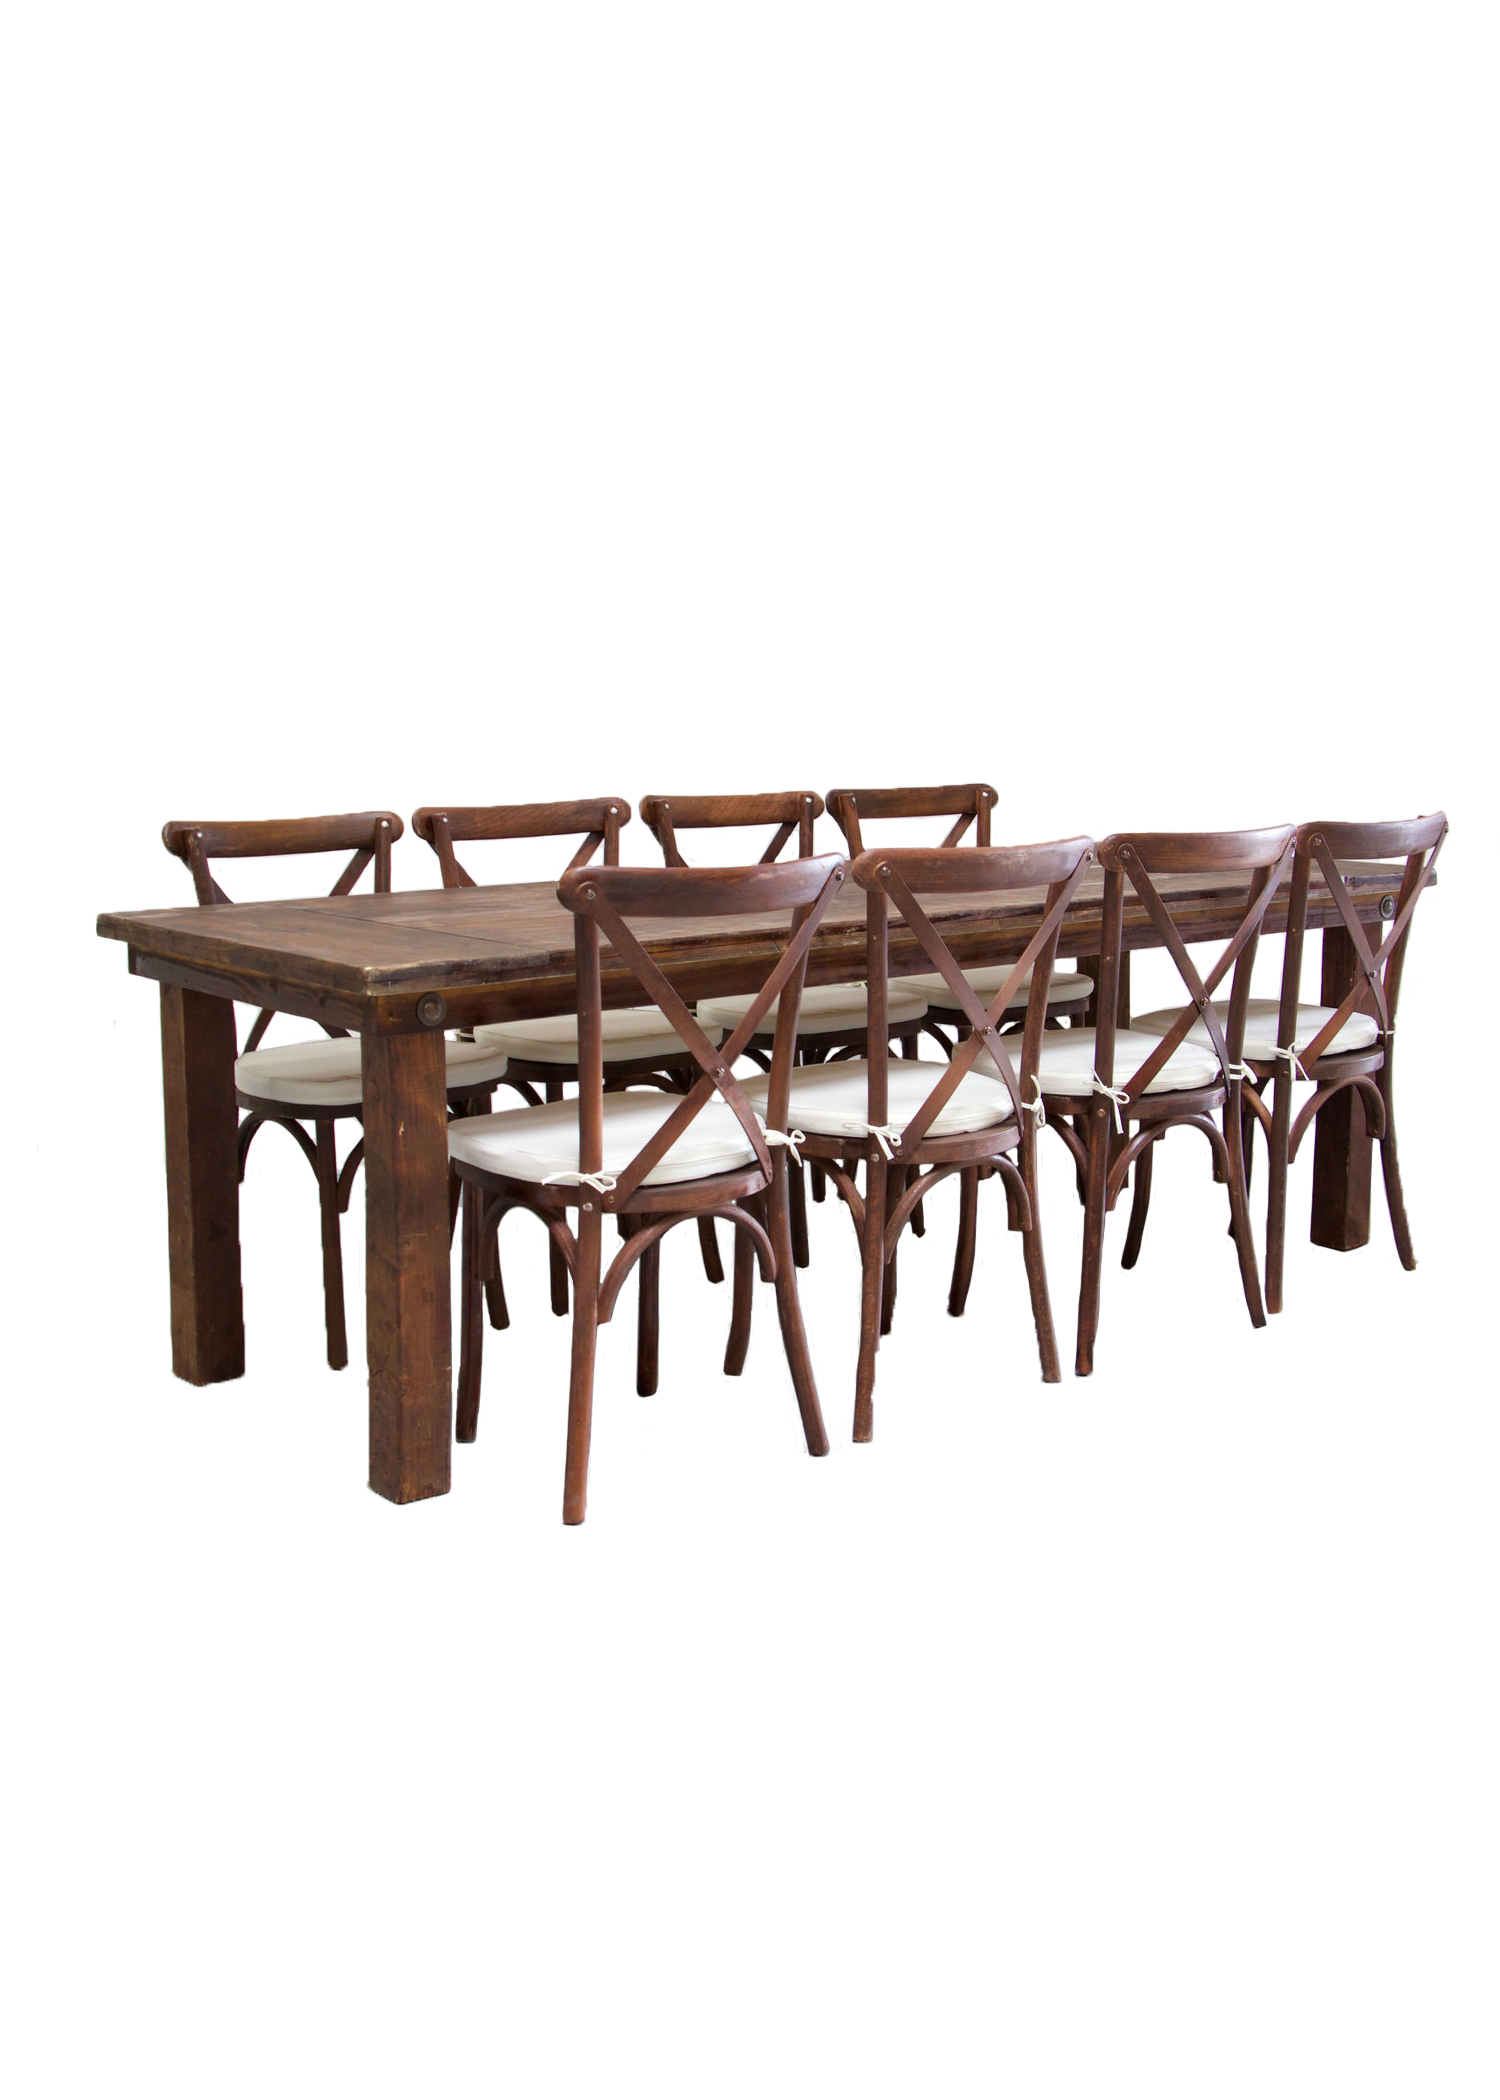 Mahogany Farm Table with 8 Cross-Back Chairs $145